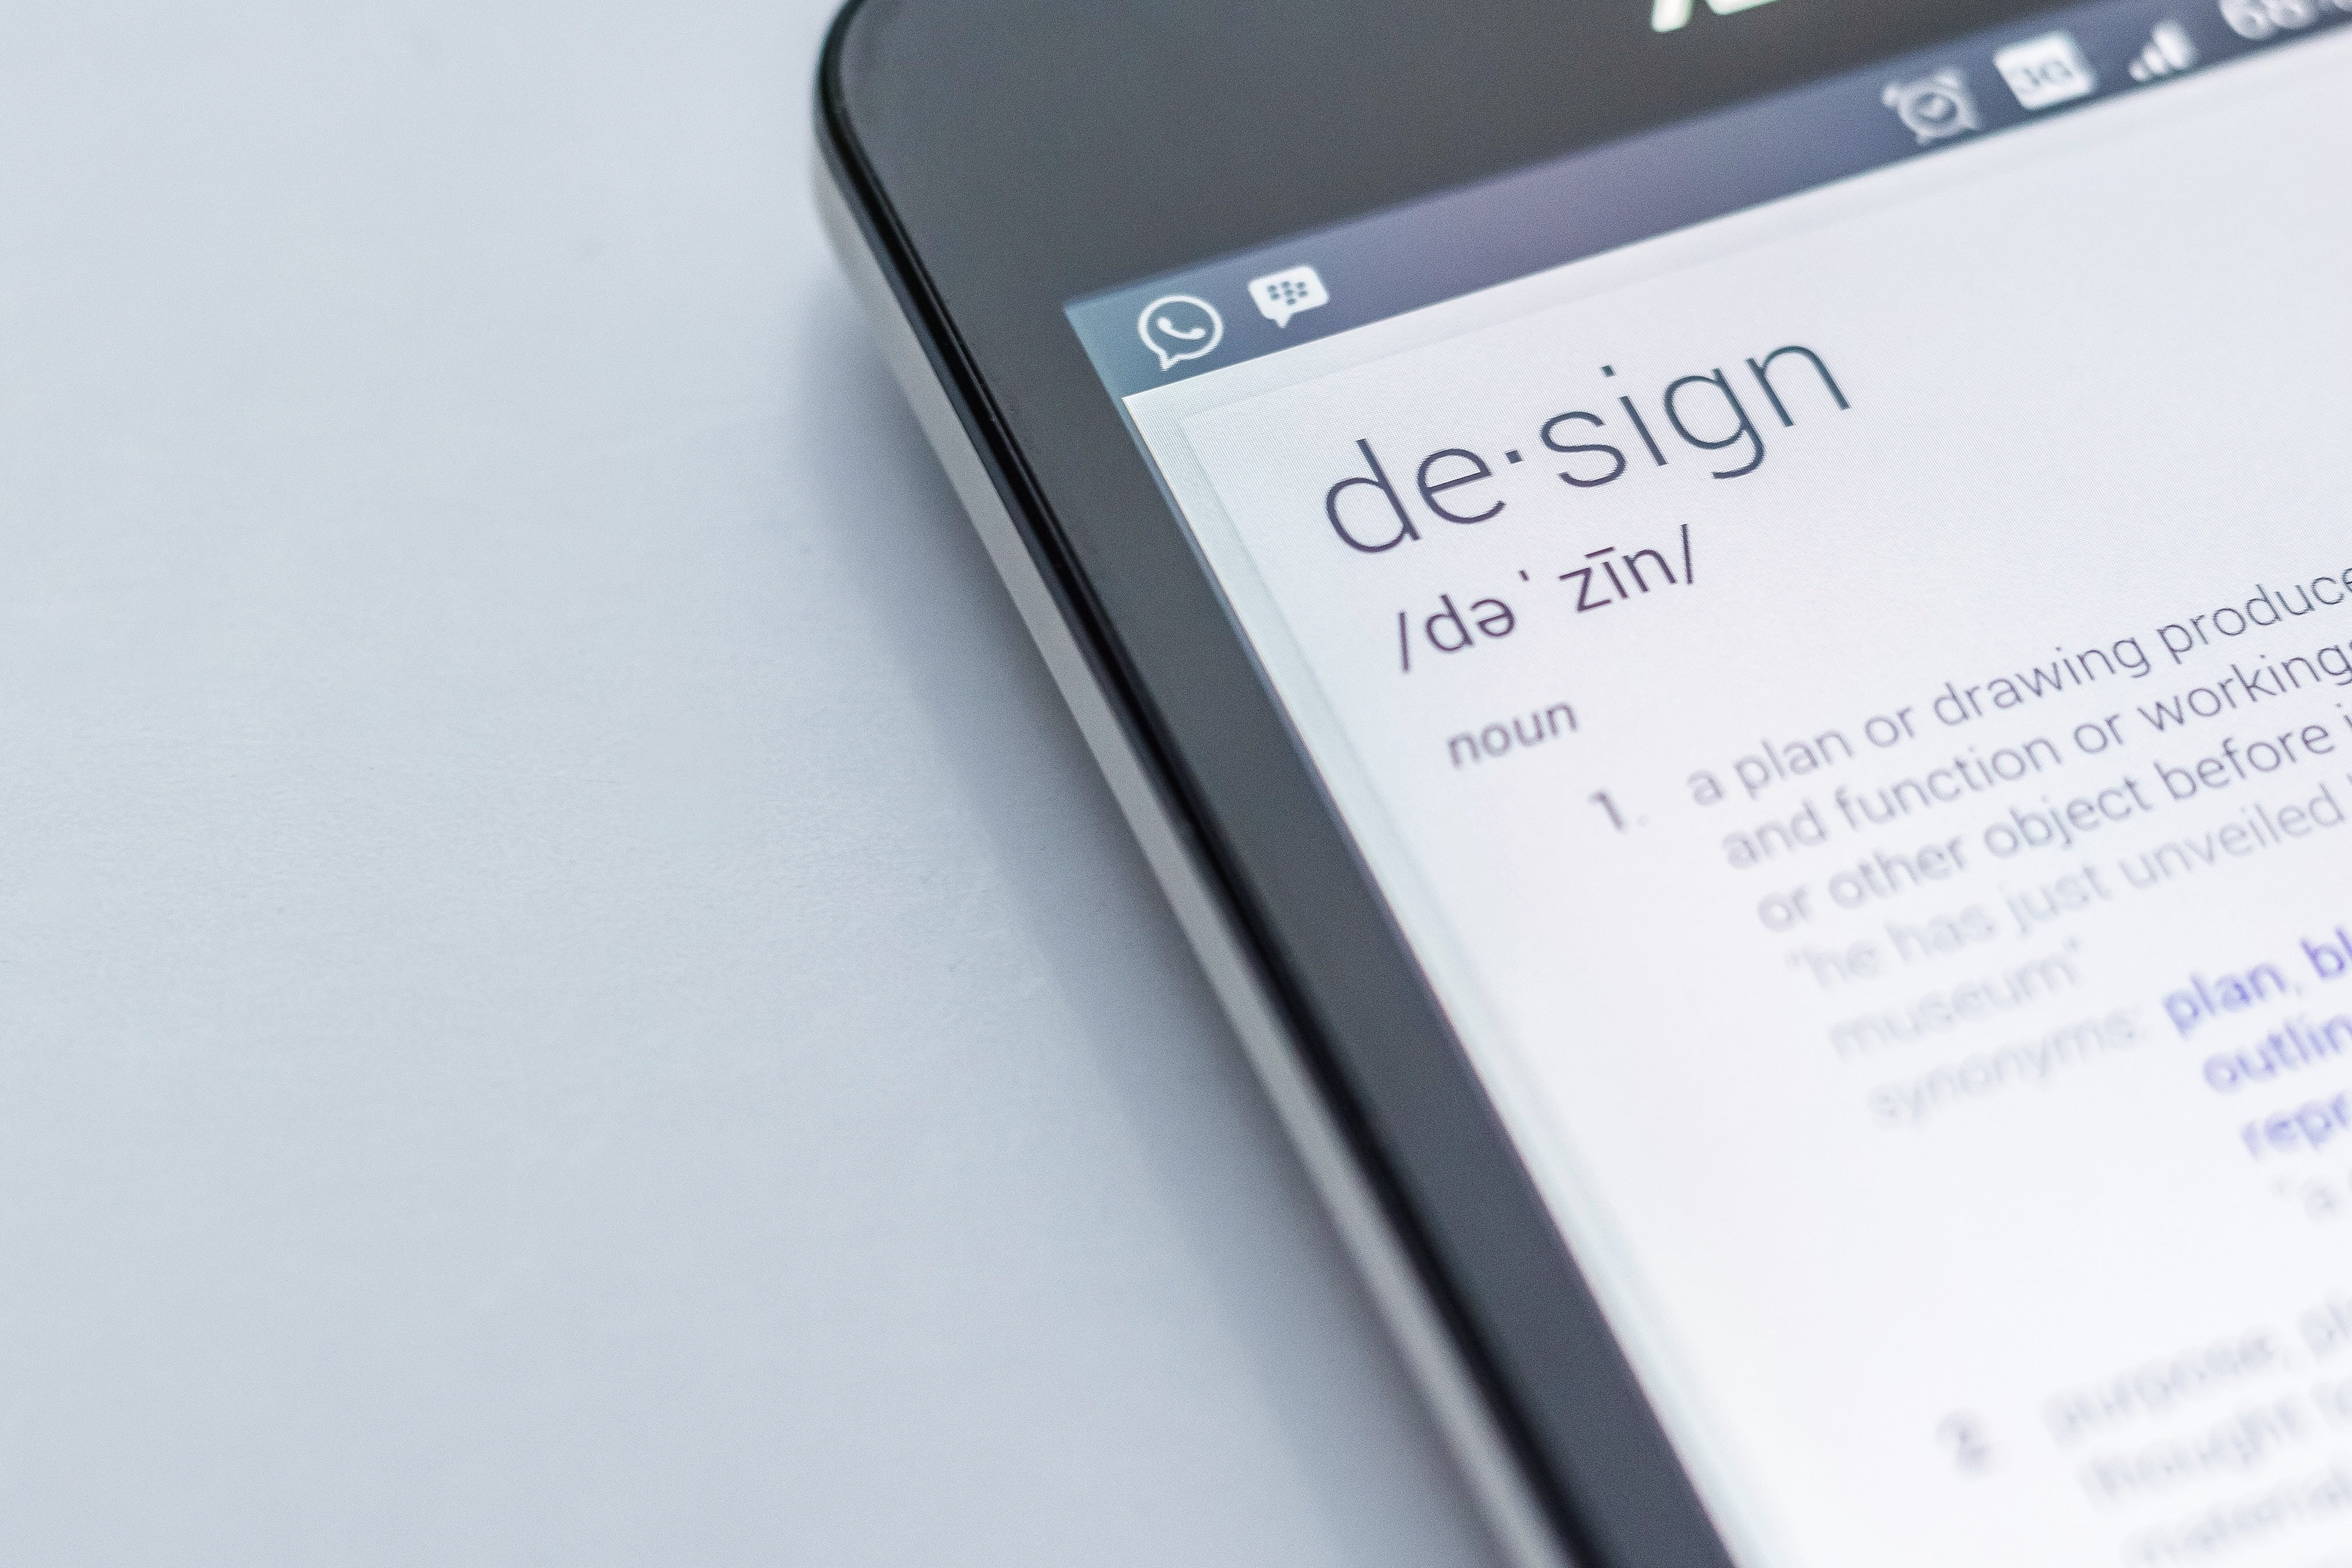 Design - in dictionary on the phone.